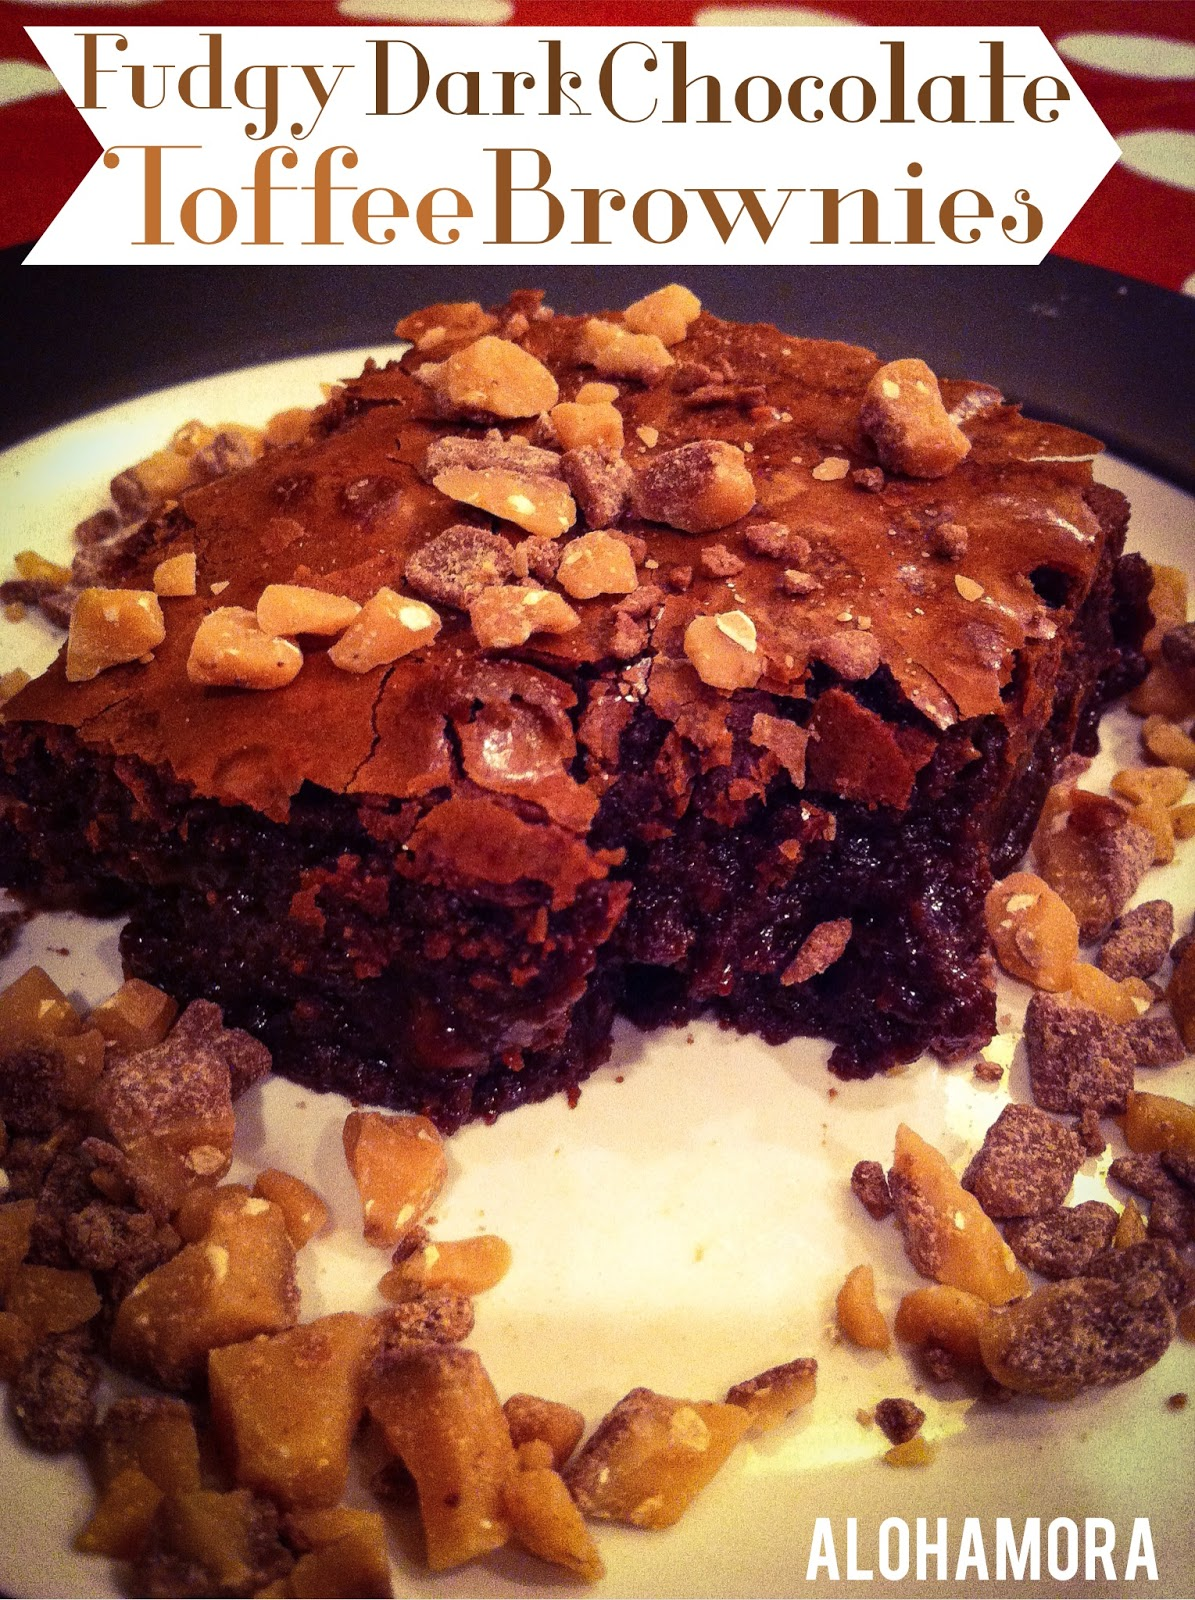 Fudgy Dark Chocolate Toffee Brownies.  If you like Heath bars and fudge gooey brownies these are delicious!  Easy from scratch brownies.  Alohamora Open a Book http://www.alohamoraopenabook.blogspot.com/